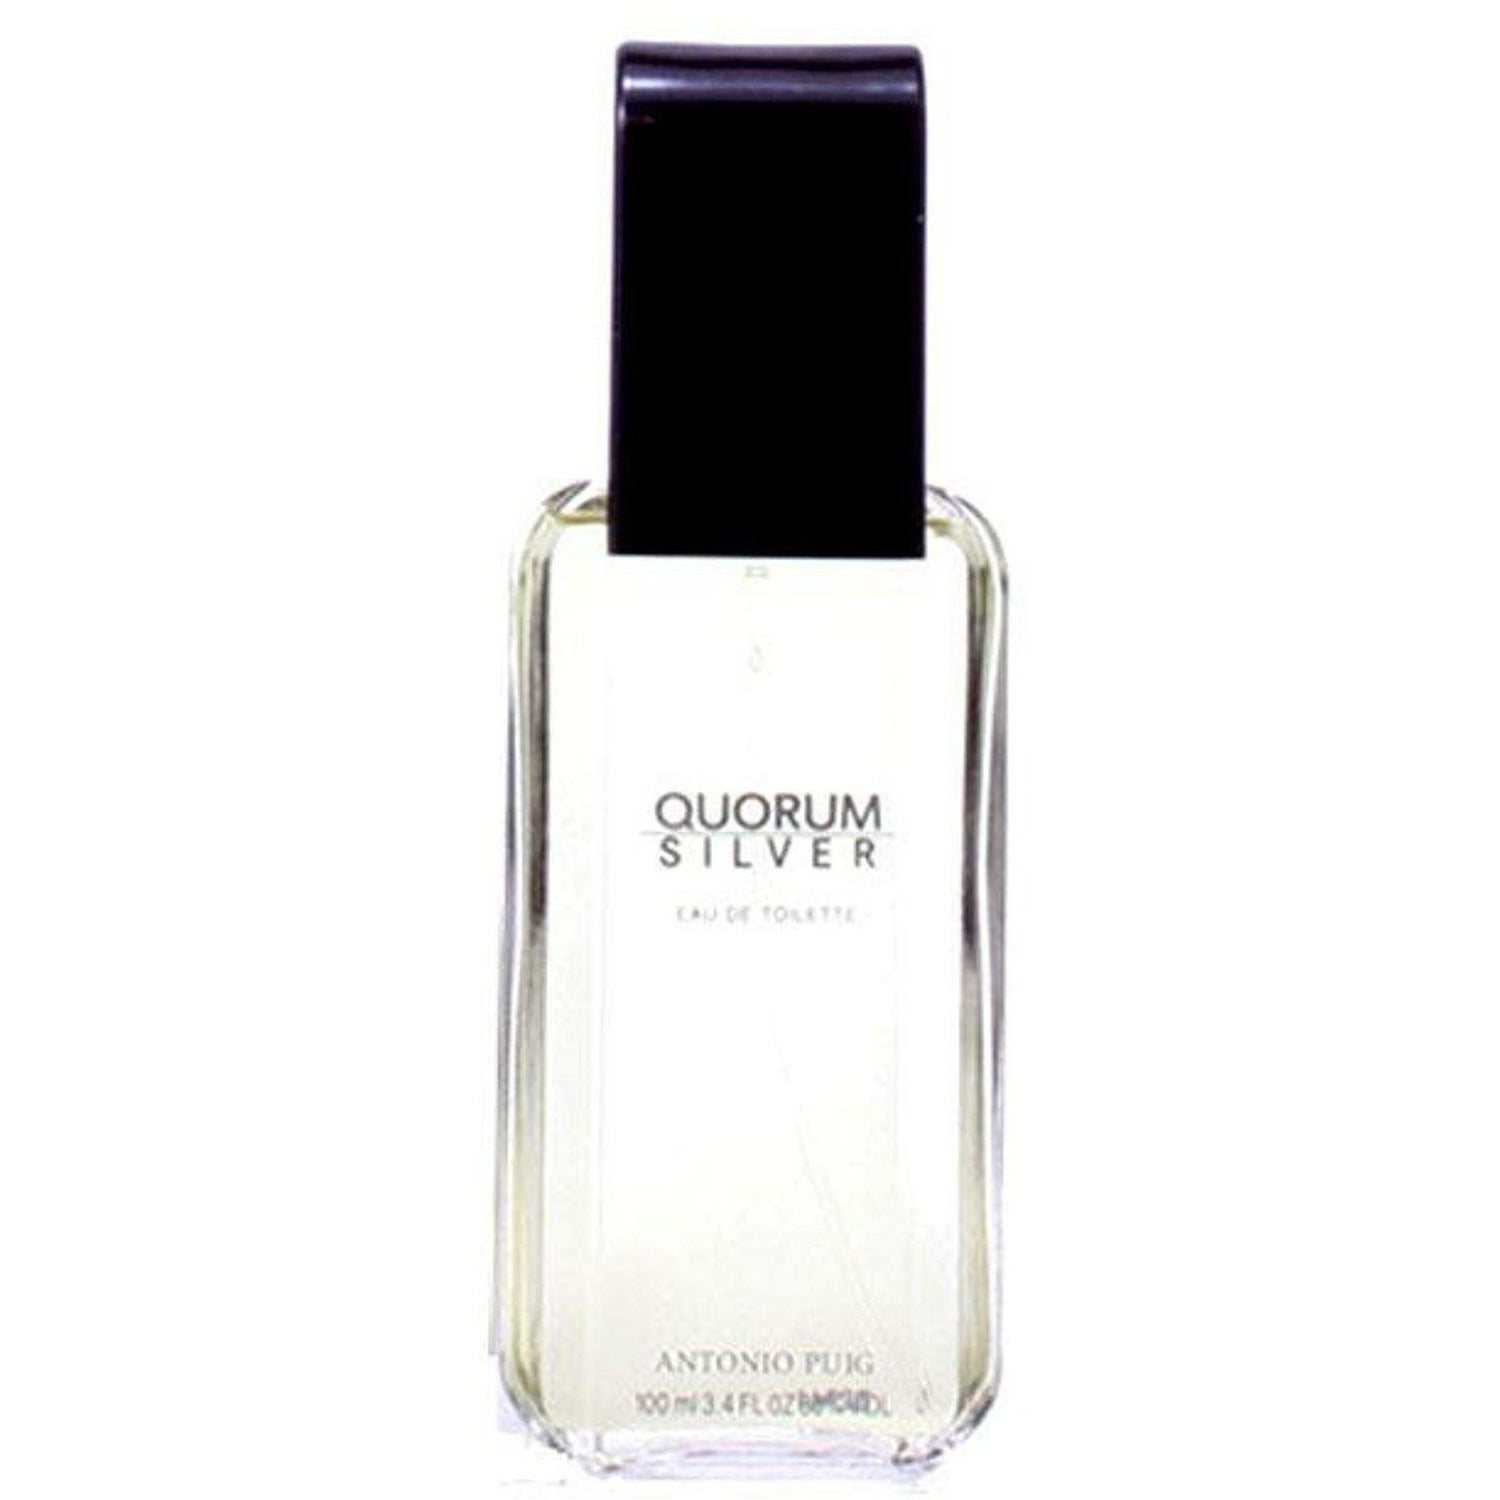 quorum-silver-by-antonio-puig-3-3-3-4-oz-edt-cologne-new-tester